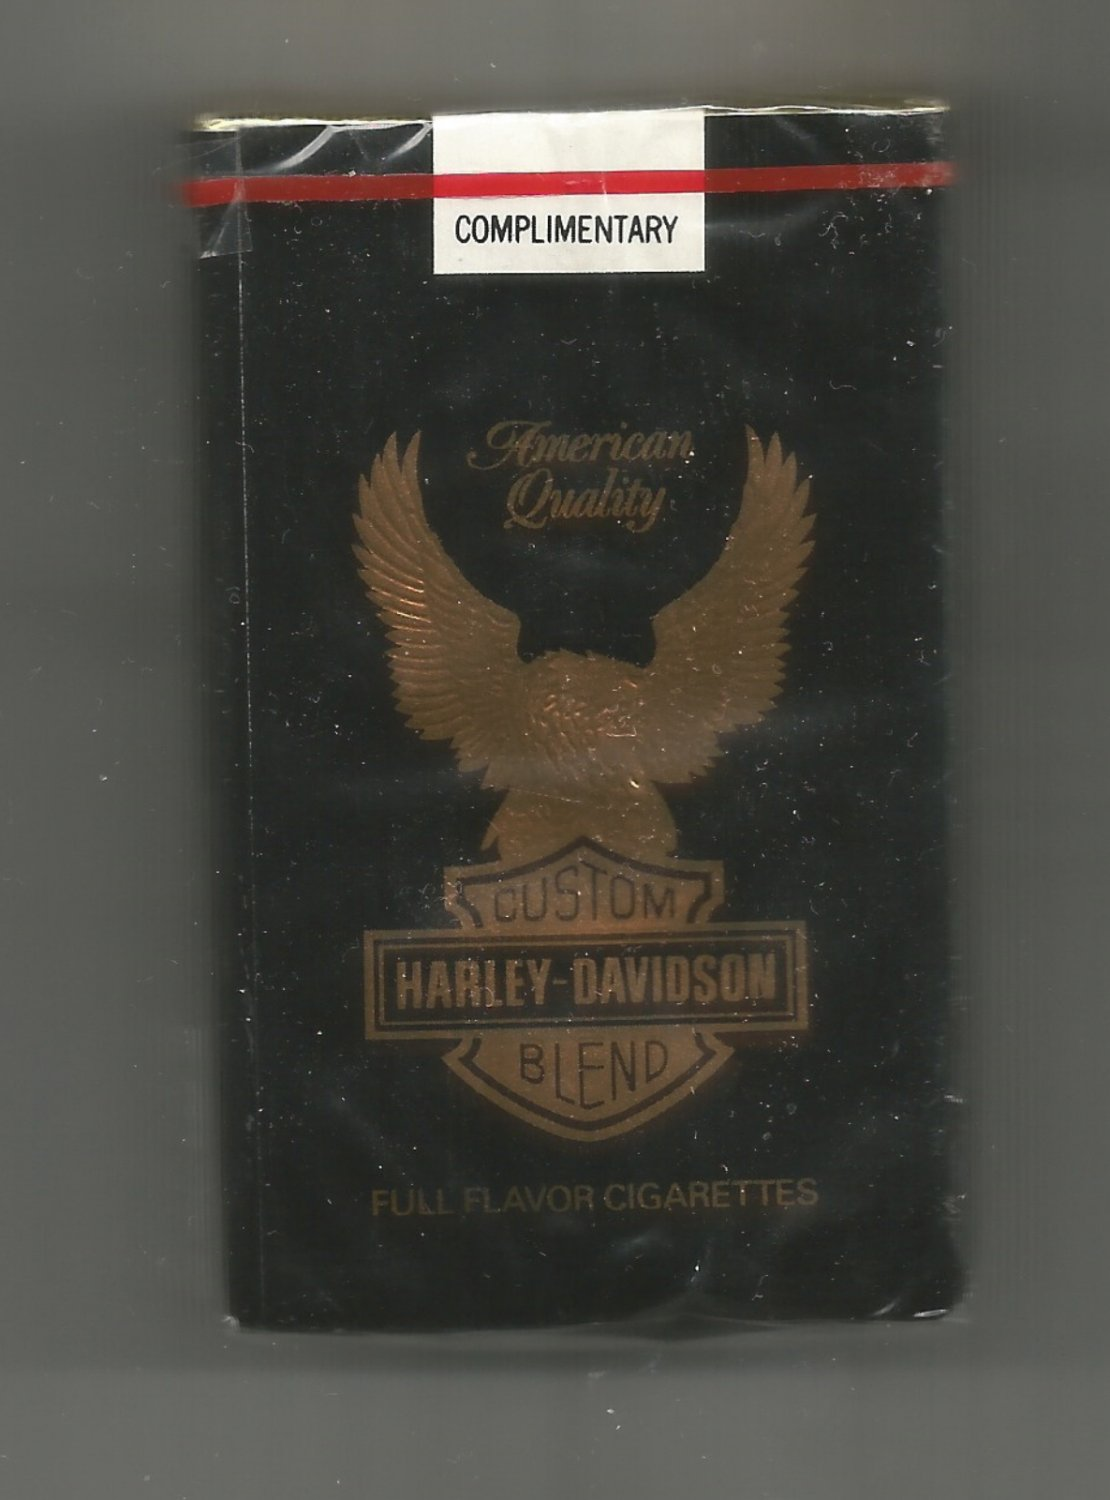 Vintage Harley Davidson Pack of King Cigarettes never opened collectible